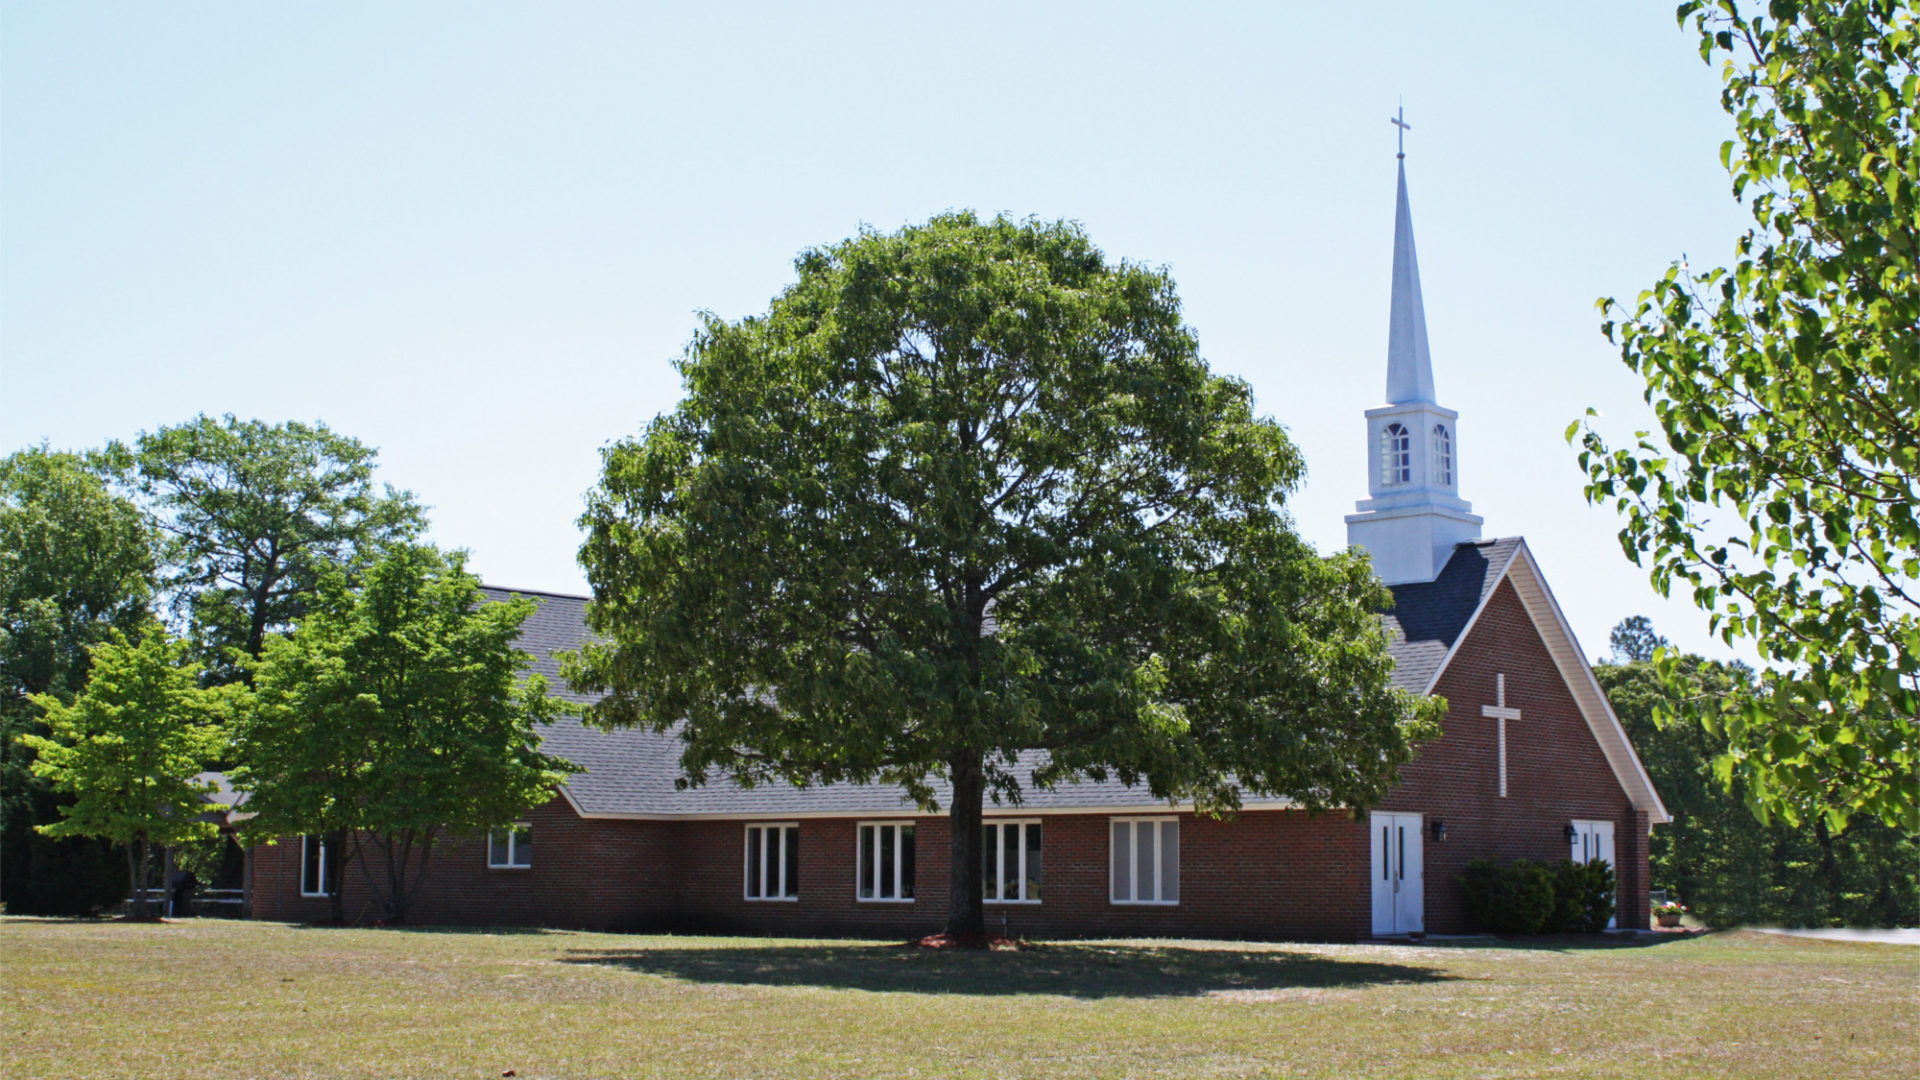 Reelsboro United Methodist Church